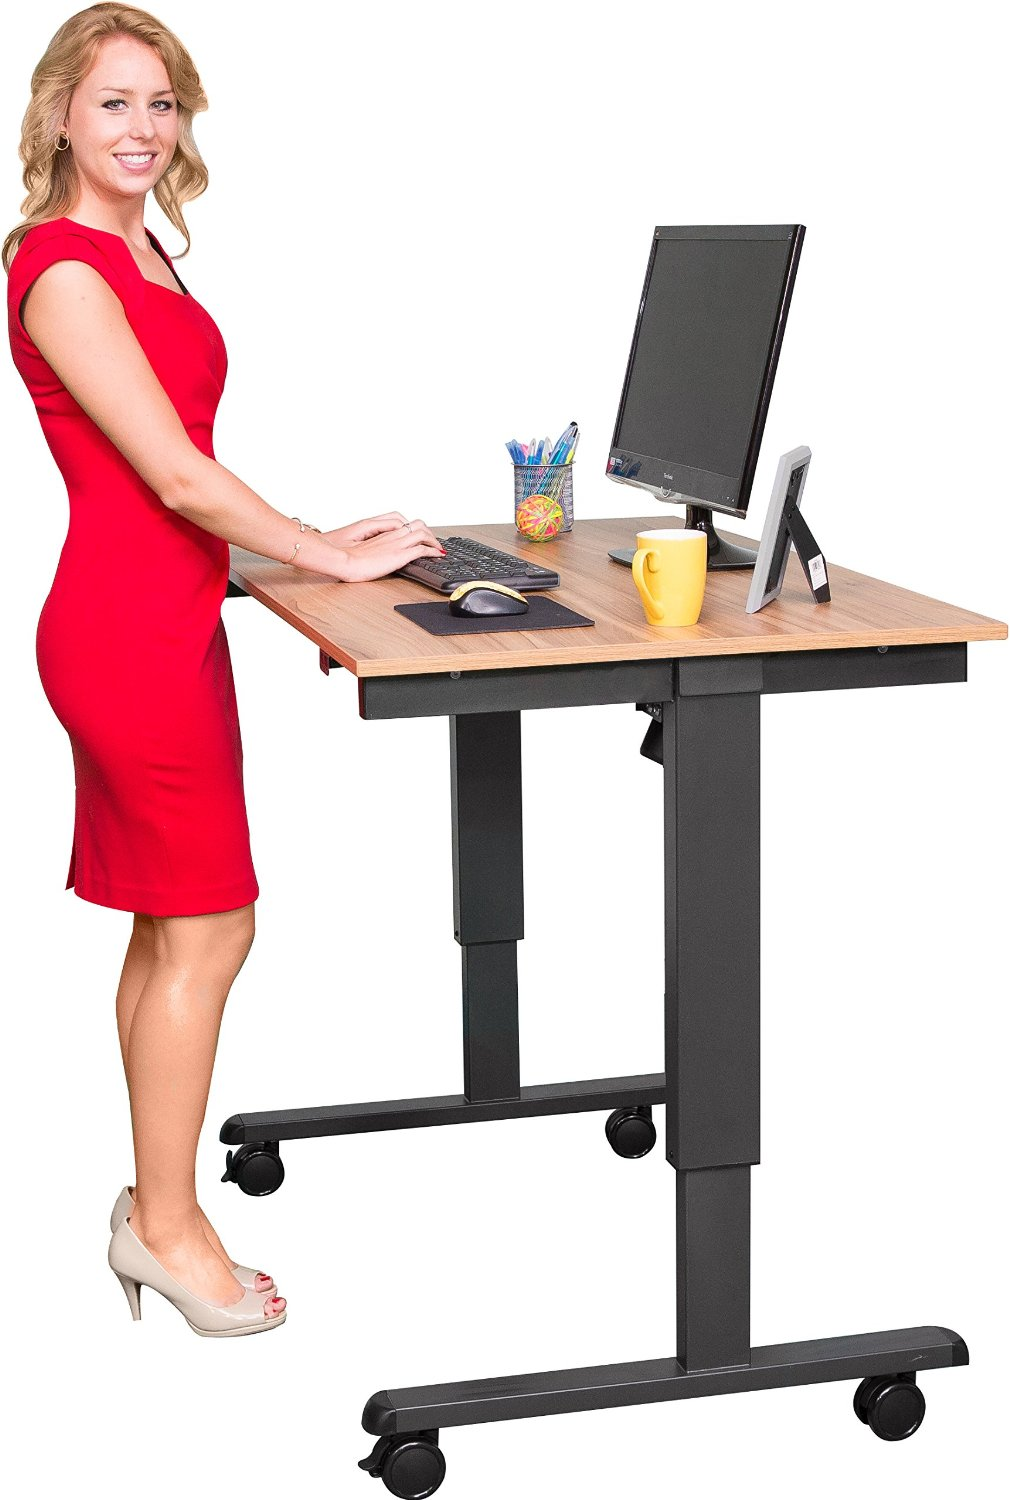 6 best ergonomic standing desks for your home or office for Standing desk at home